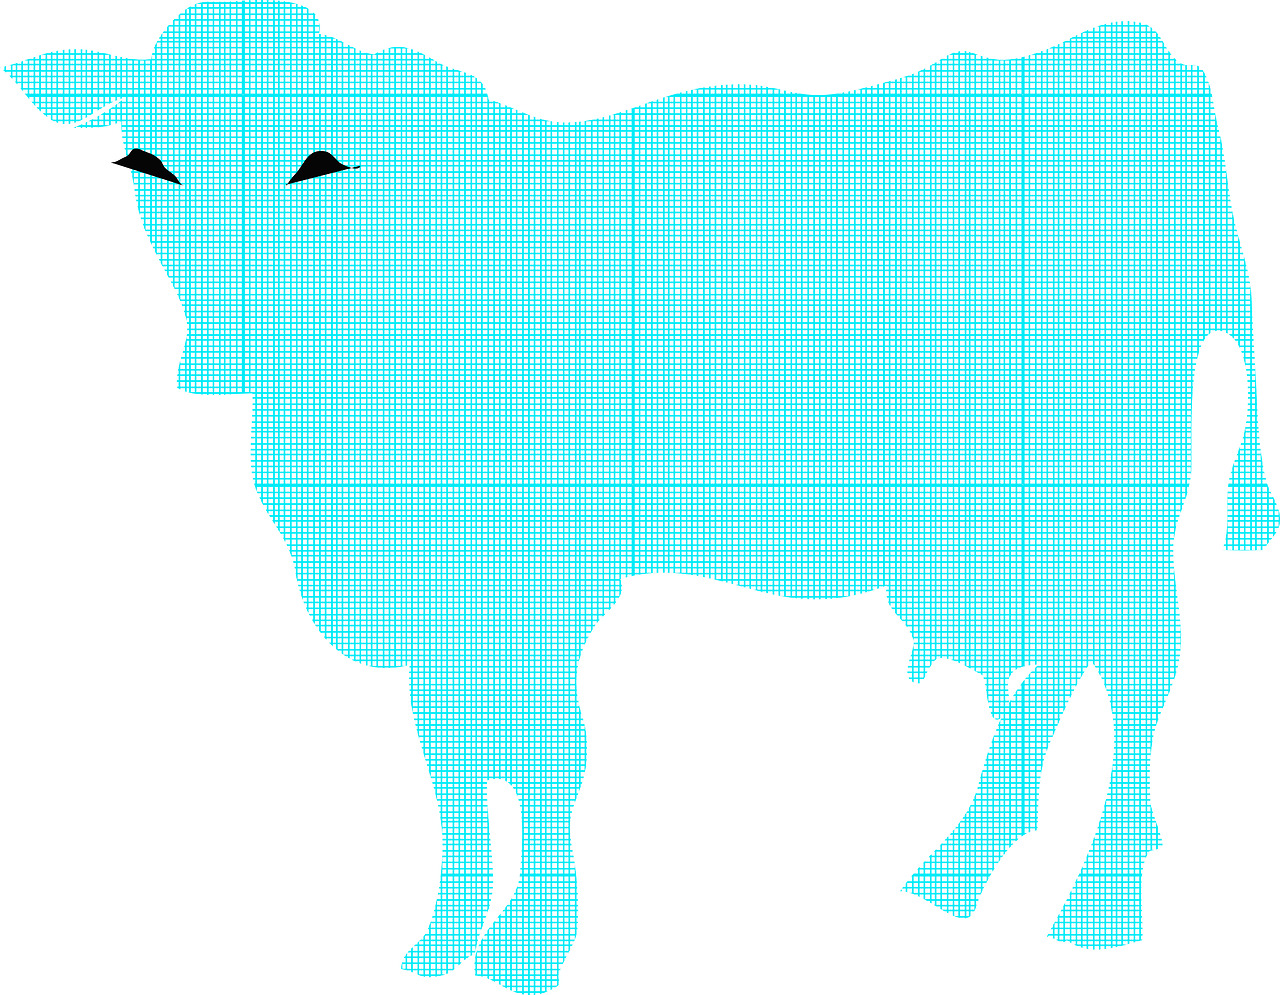 I'm really into animals right now. My sister requested a cow.